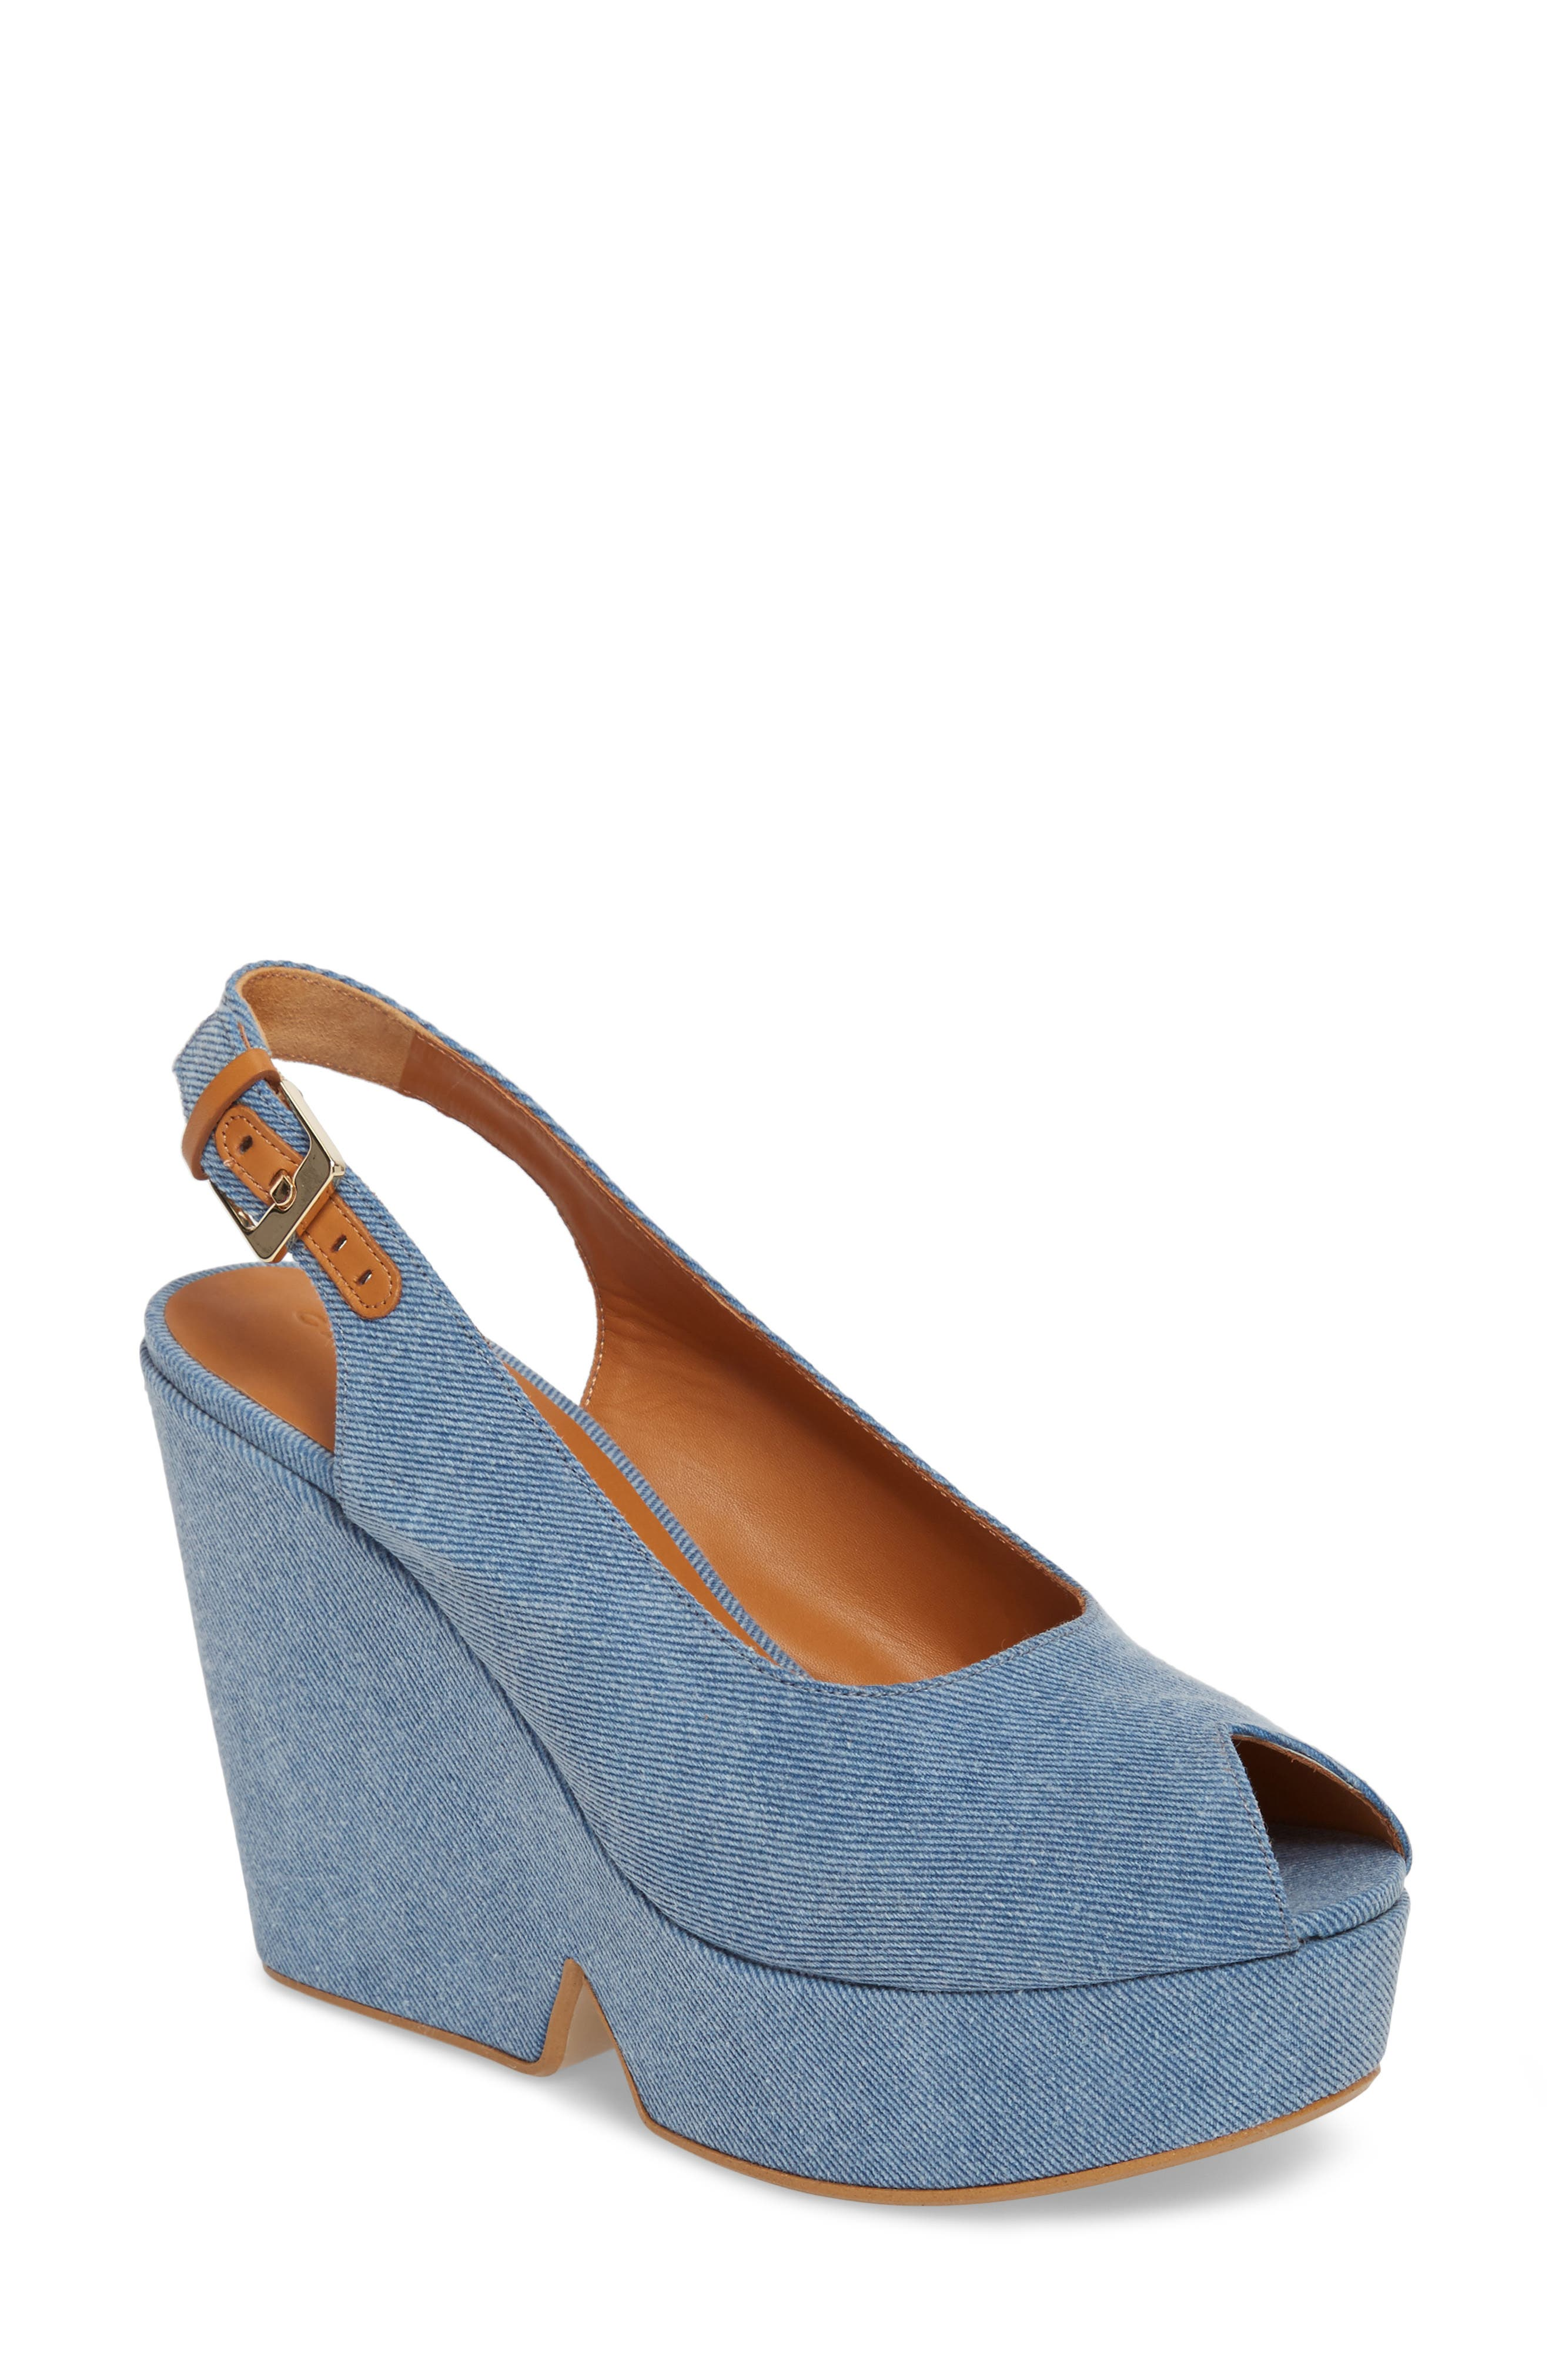 Main Image - Robert Clergerie Dylanto Platform Wedge Sandal (Women)